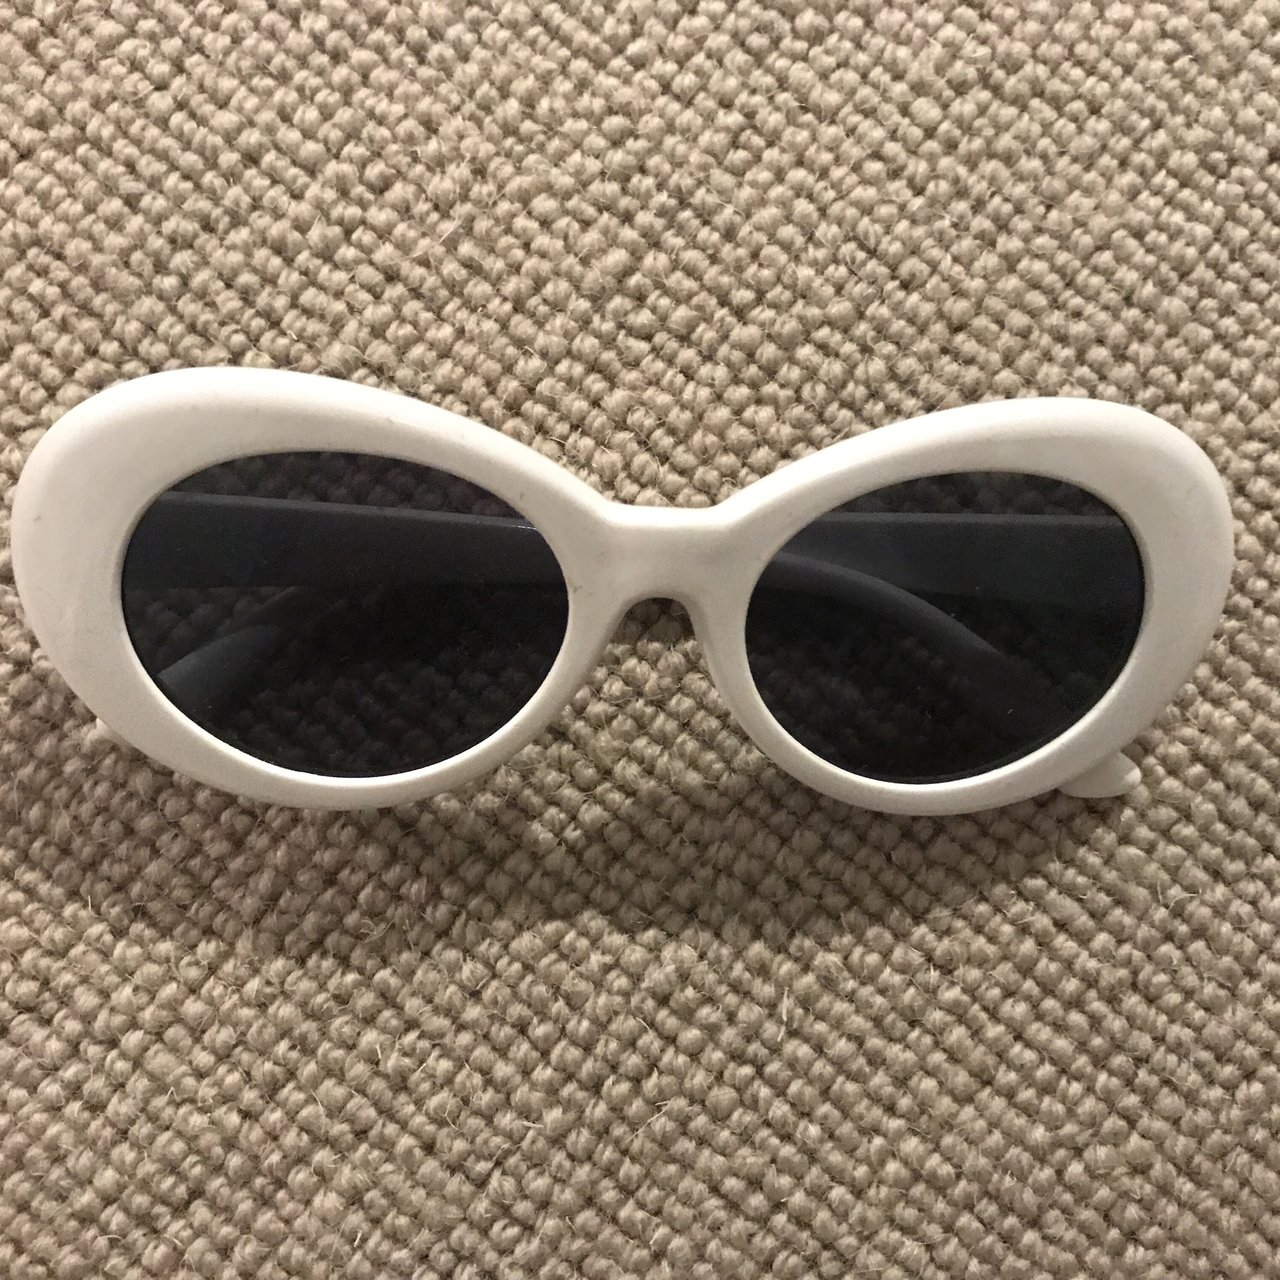 95ff7f0183d White clout goggles. New never worn - Depop